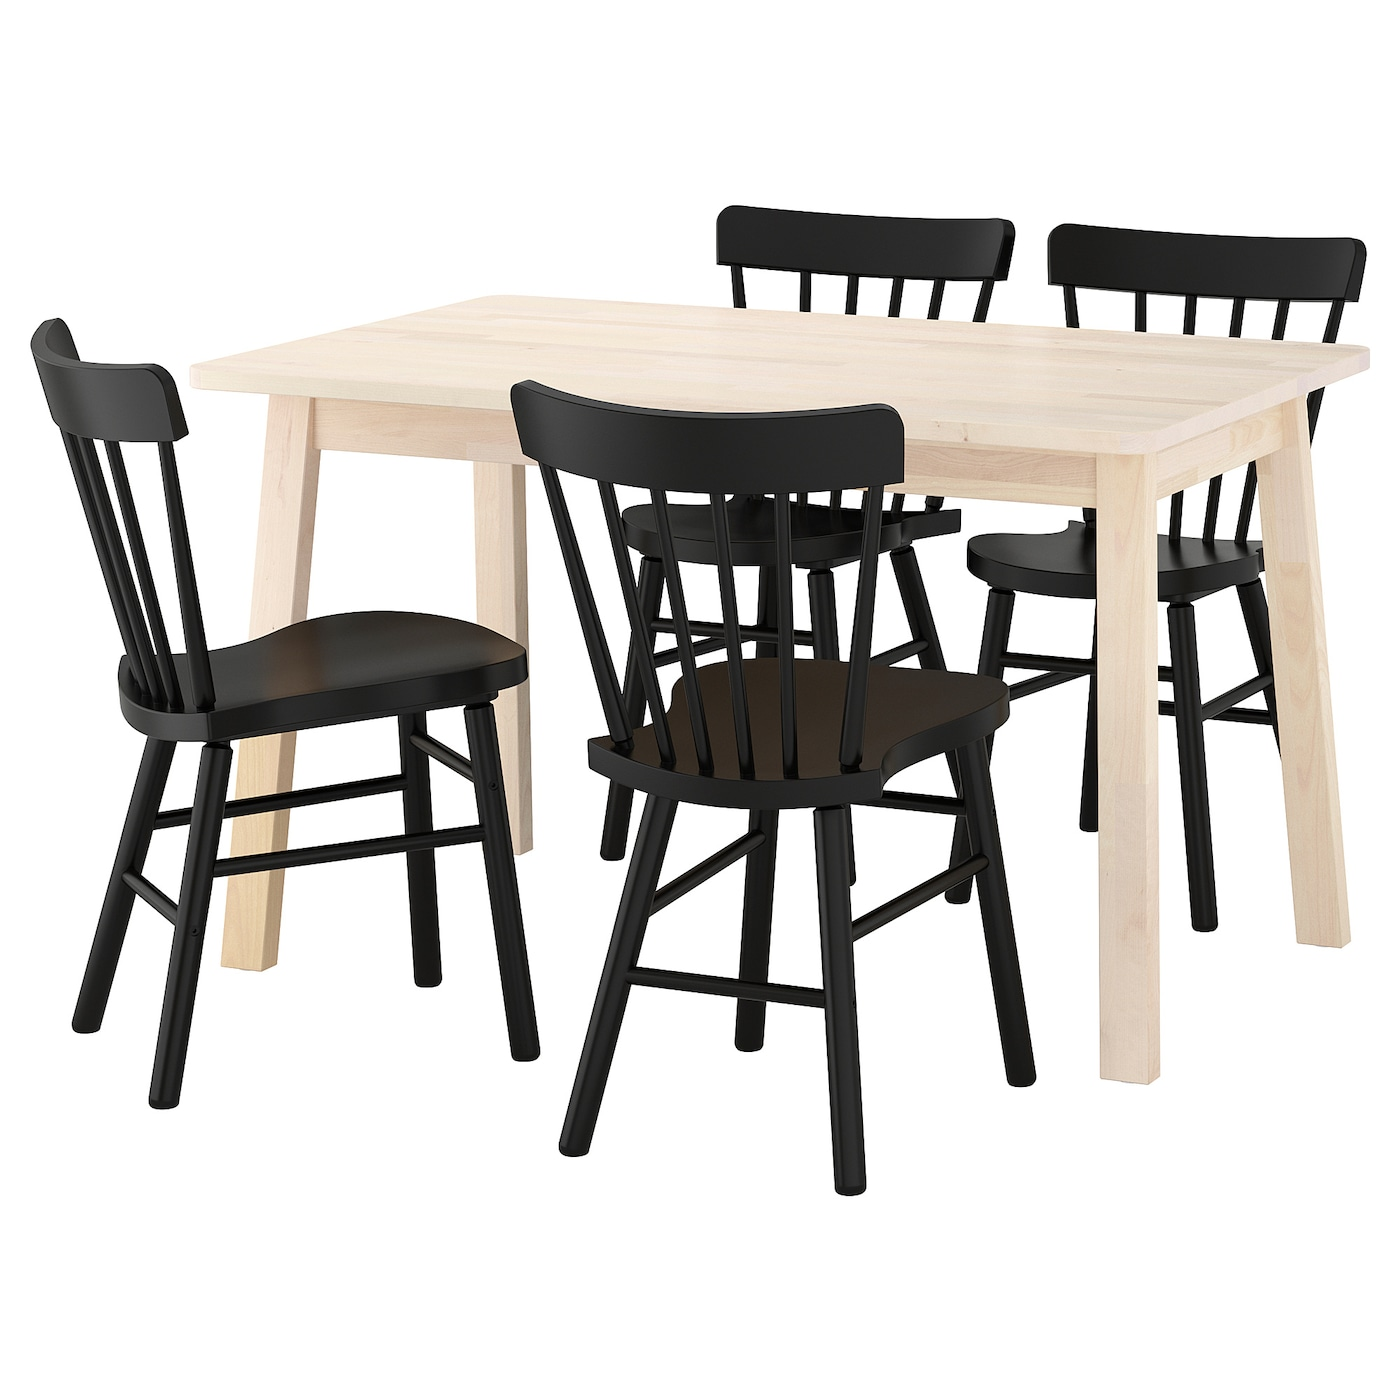 IKEA NORRARYD/NORRÅKER table and 4 chairs